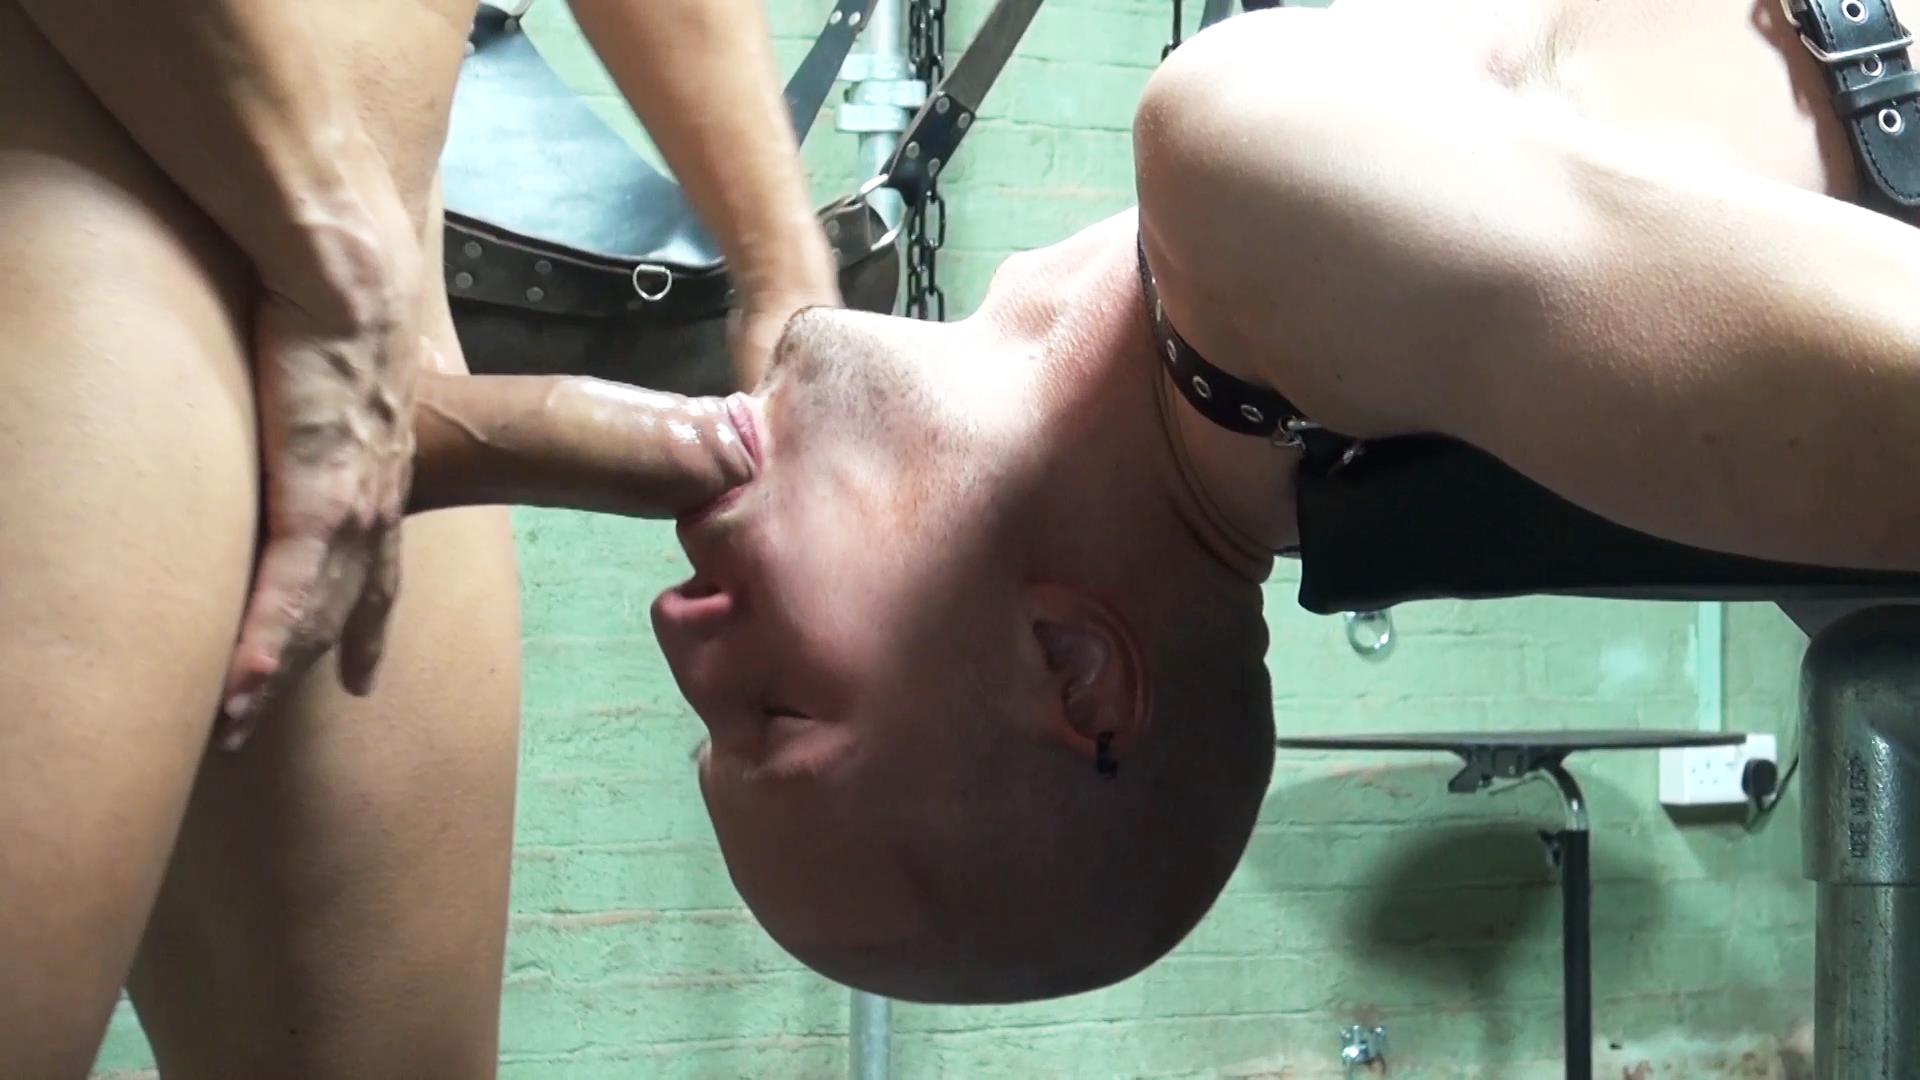 Dark-Alley-XT-Anakonda-and-Jason-Domino-Bareback-Big-Uncut-Cock-Amateur-Gay-Porn-3 Breeding A Slave Hole With A Big Uncut Cock At The Bathhouse